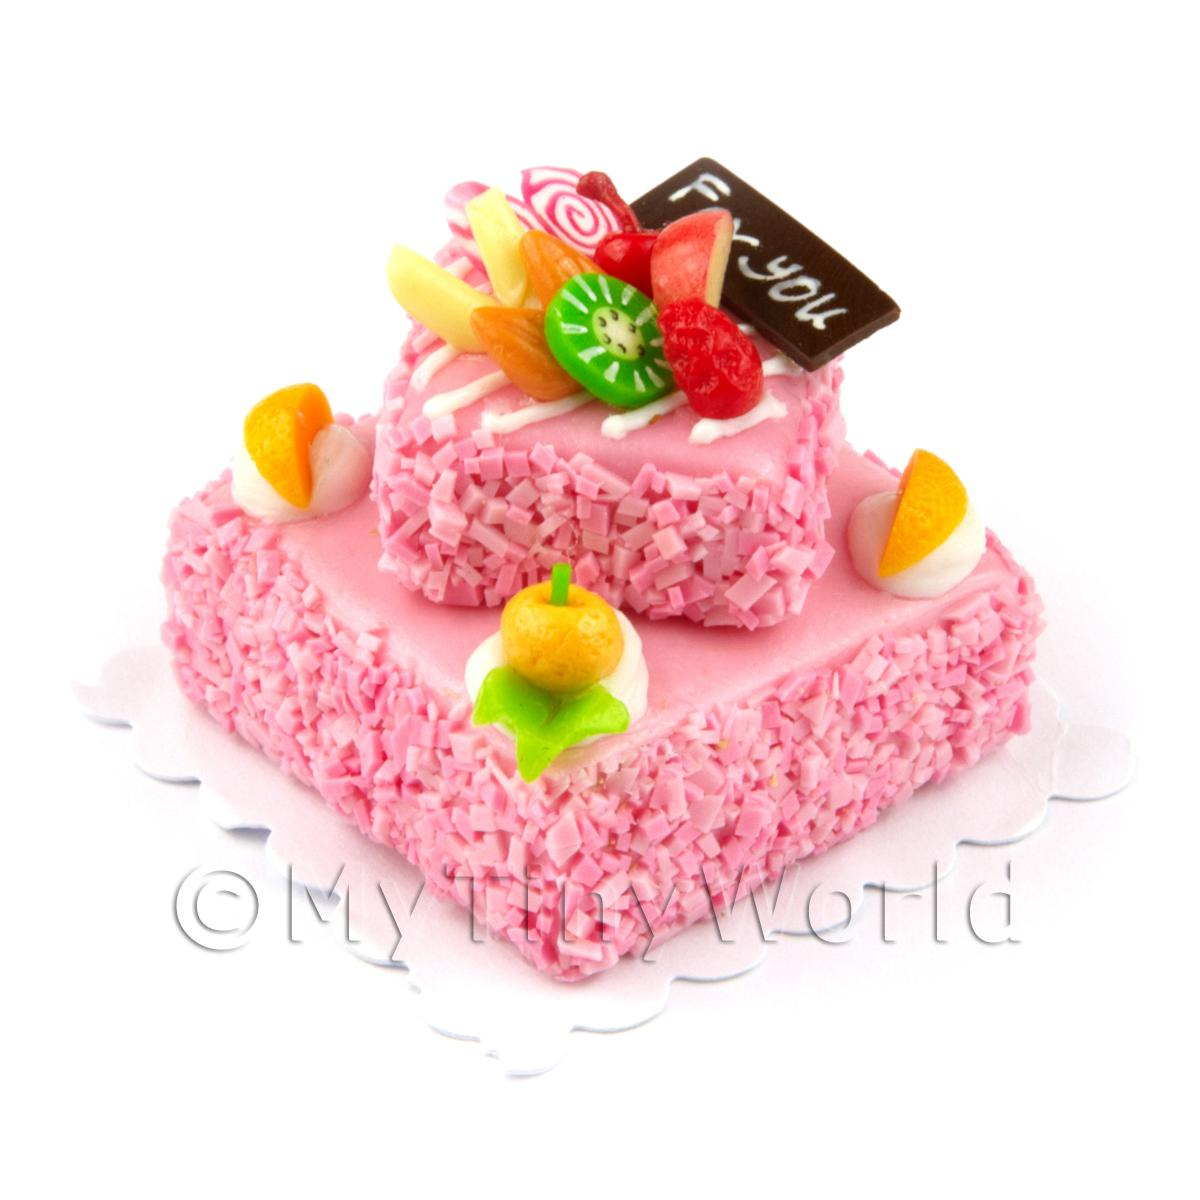 Dolls House Miniature Large Handmade Two Tier Pink Square Cake